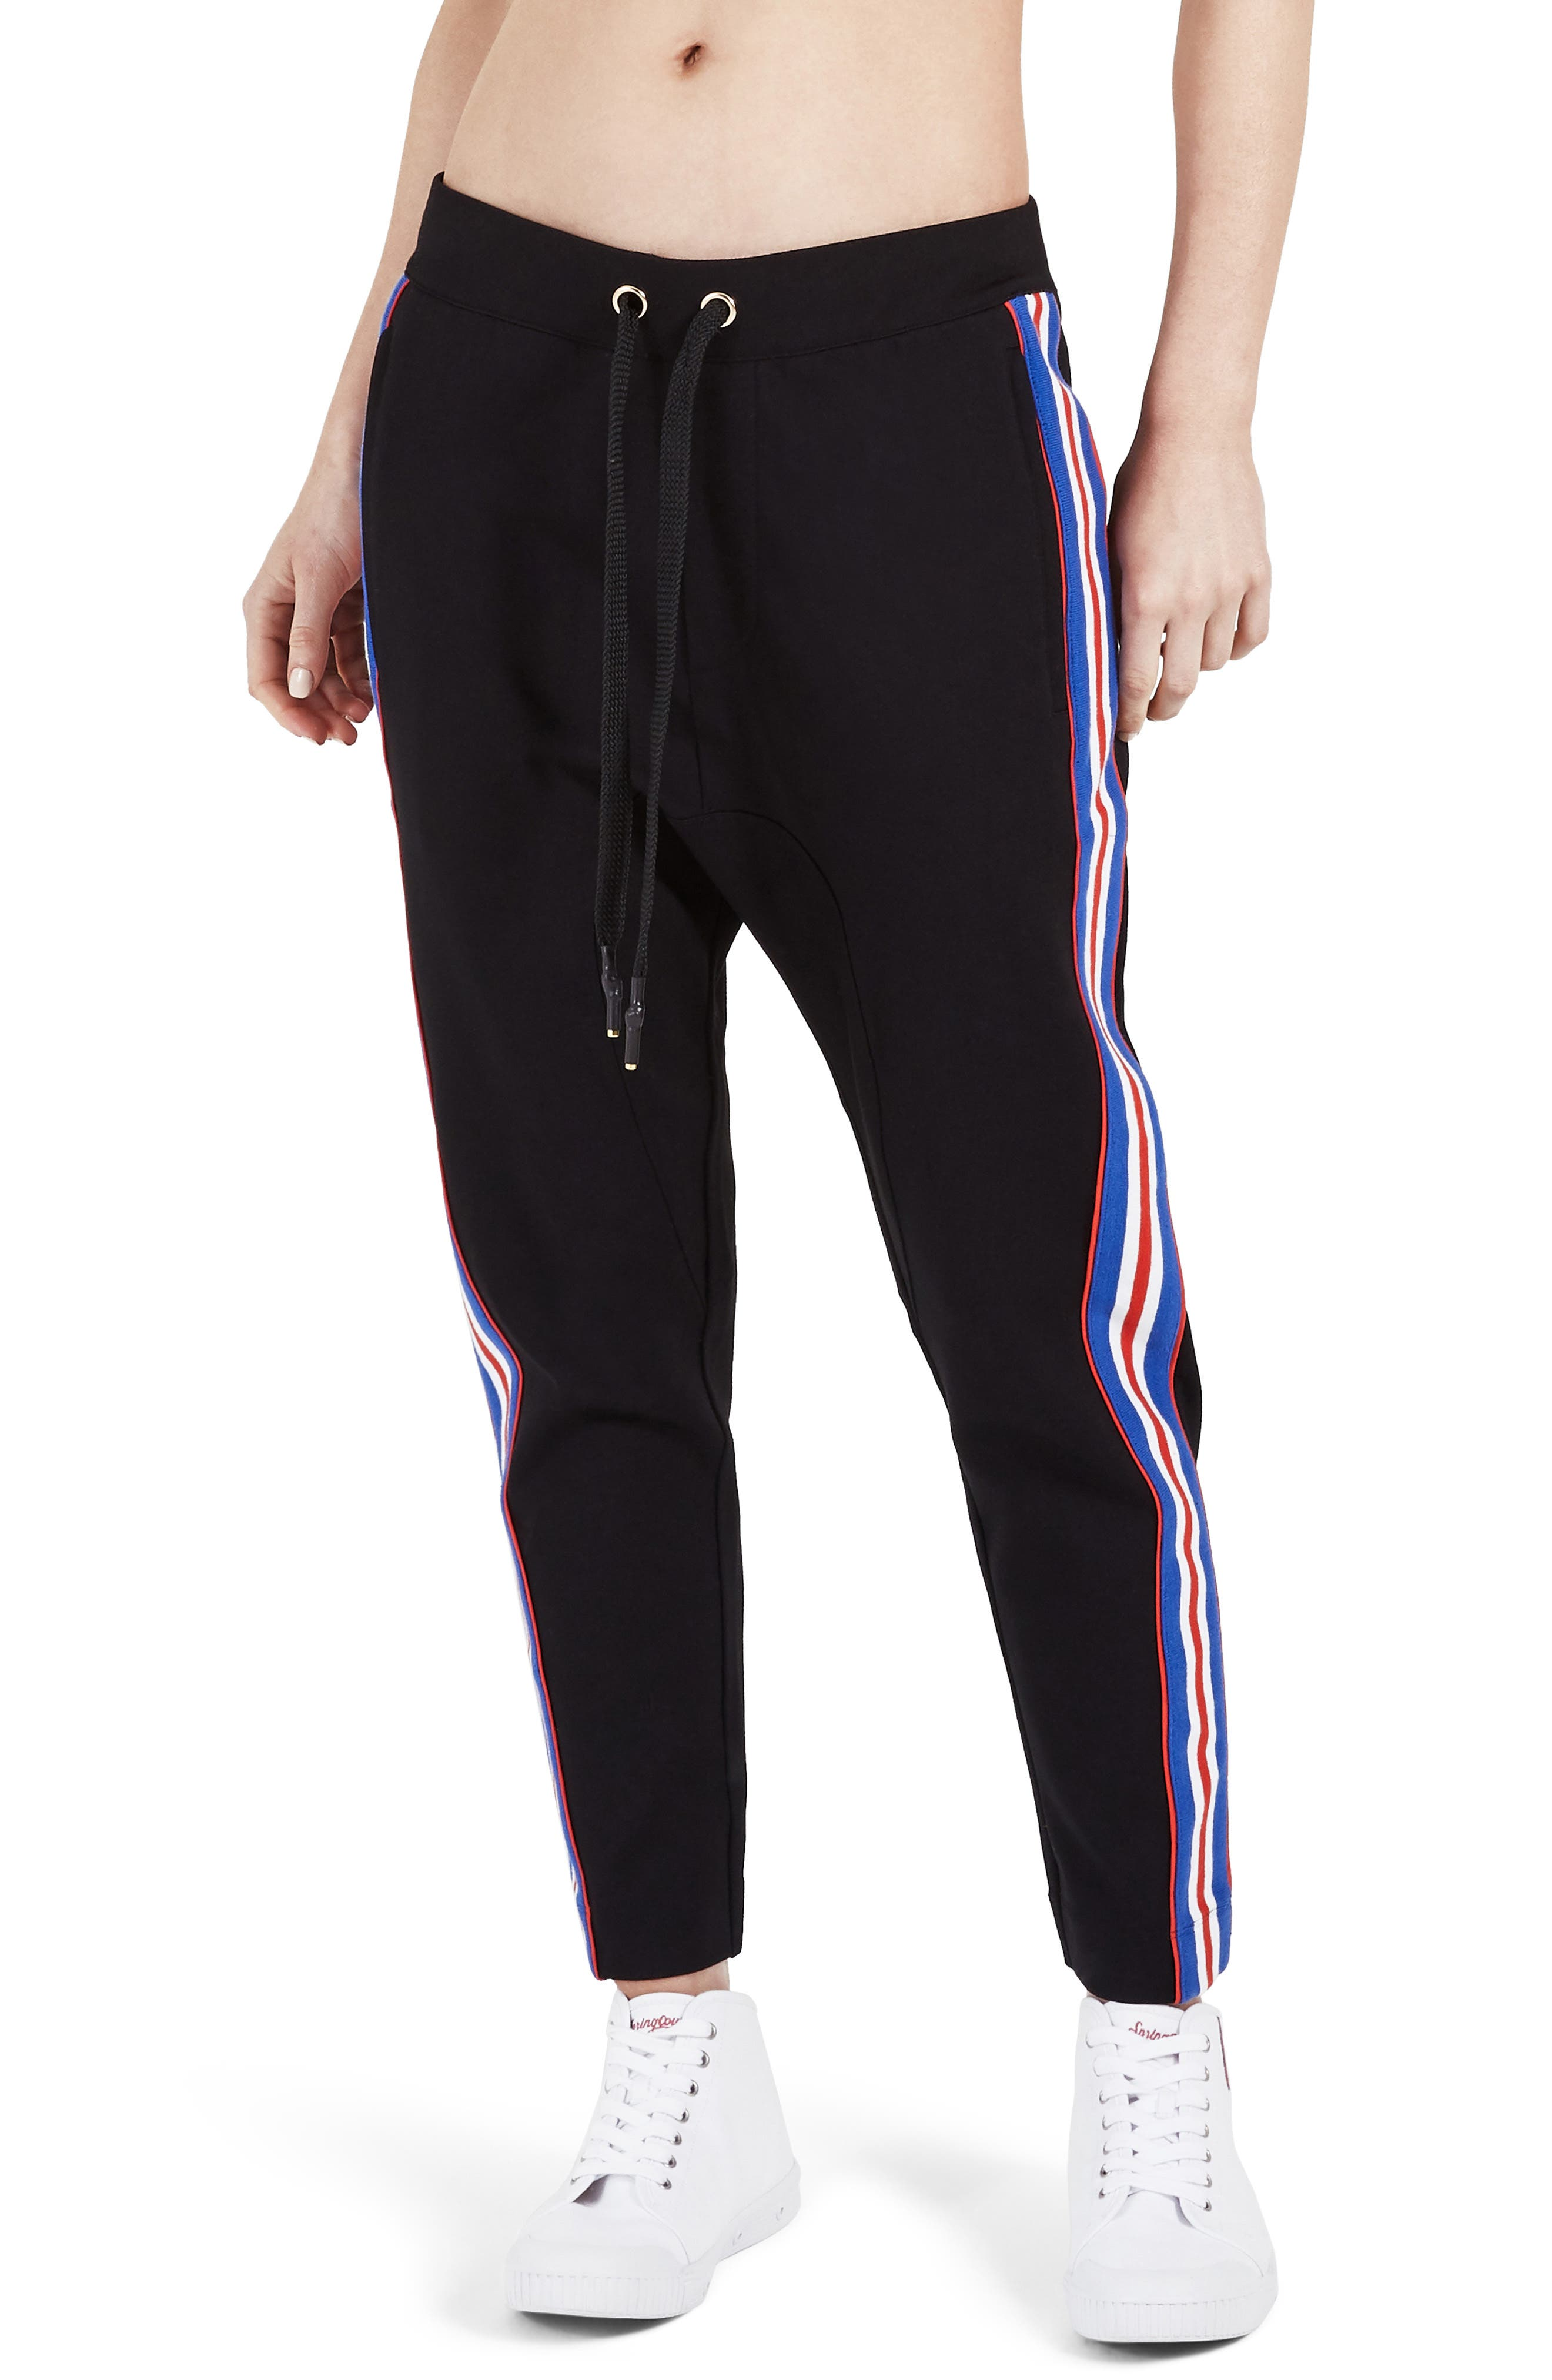 P.E NATION Court Run Ankle-Length Ponte Pants W/ Side Stripes in Black/ Red/ White/ Blue